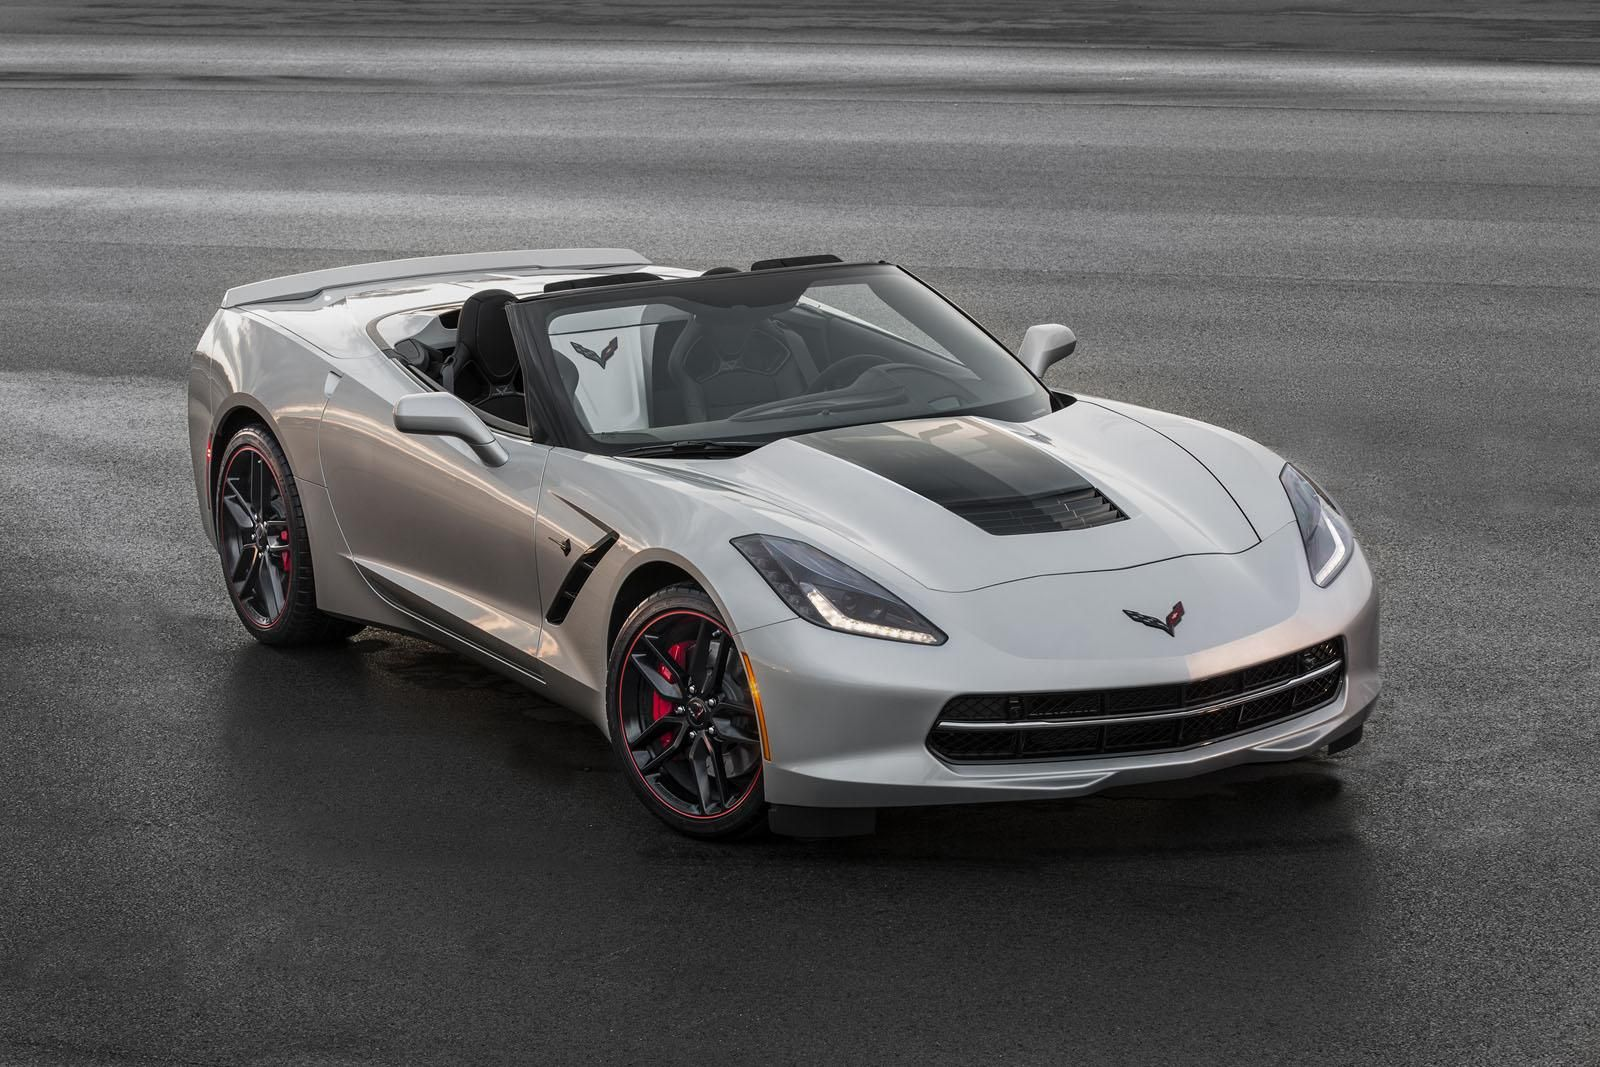 2018 Chevy Corvette Grand Sports With Special Offer Price At Chevrolet Dealer In Houston Tx Corvette Stingray Chevrolet Corvette Stingray Chevrolet Corvette